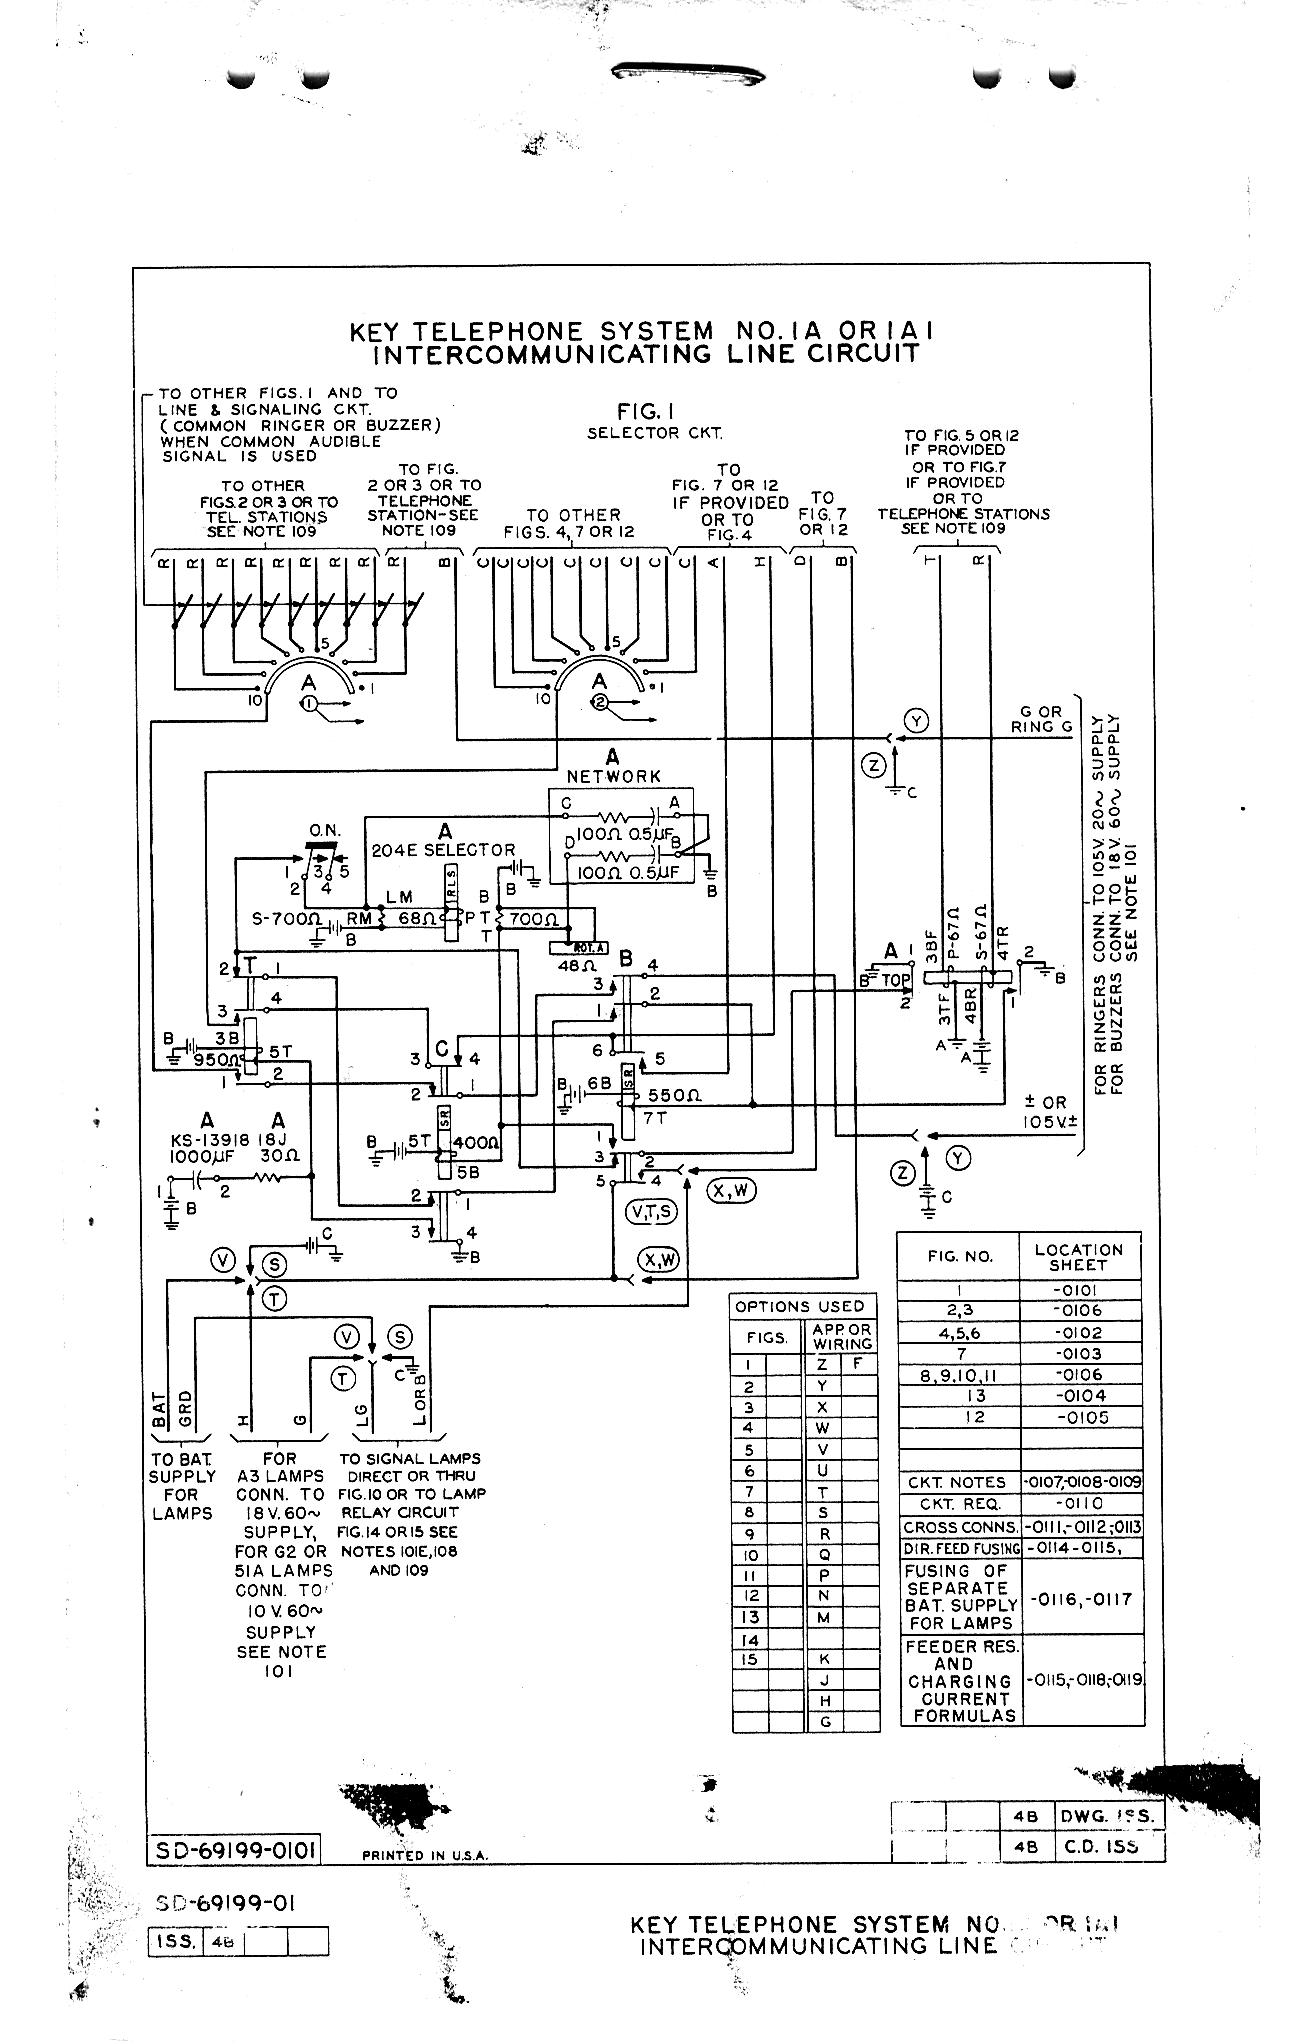 Western Electric 2500 Wiring Diagram Library Faxphone Or 1a1 Circuits